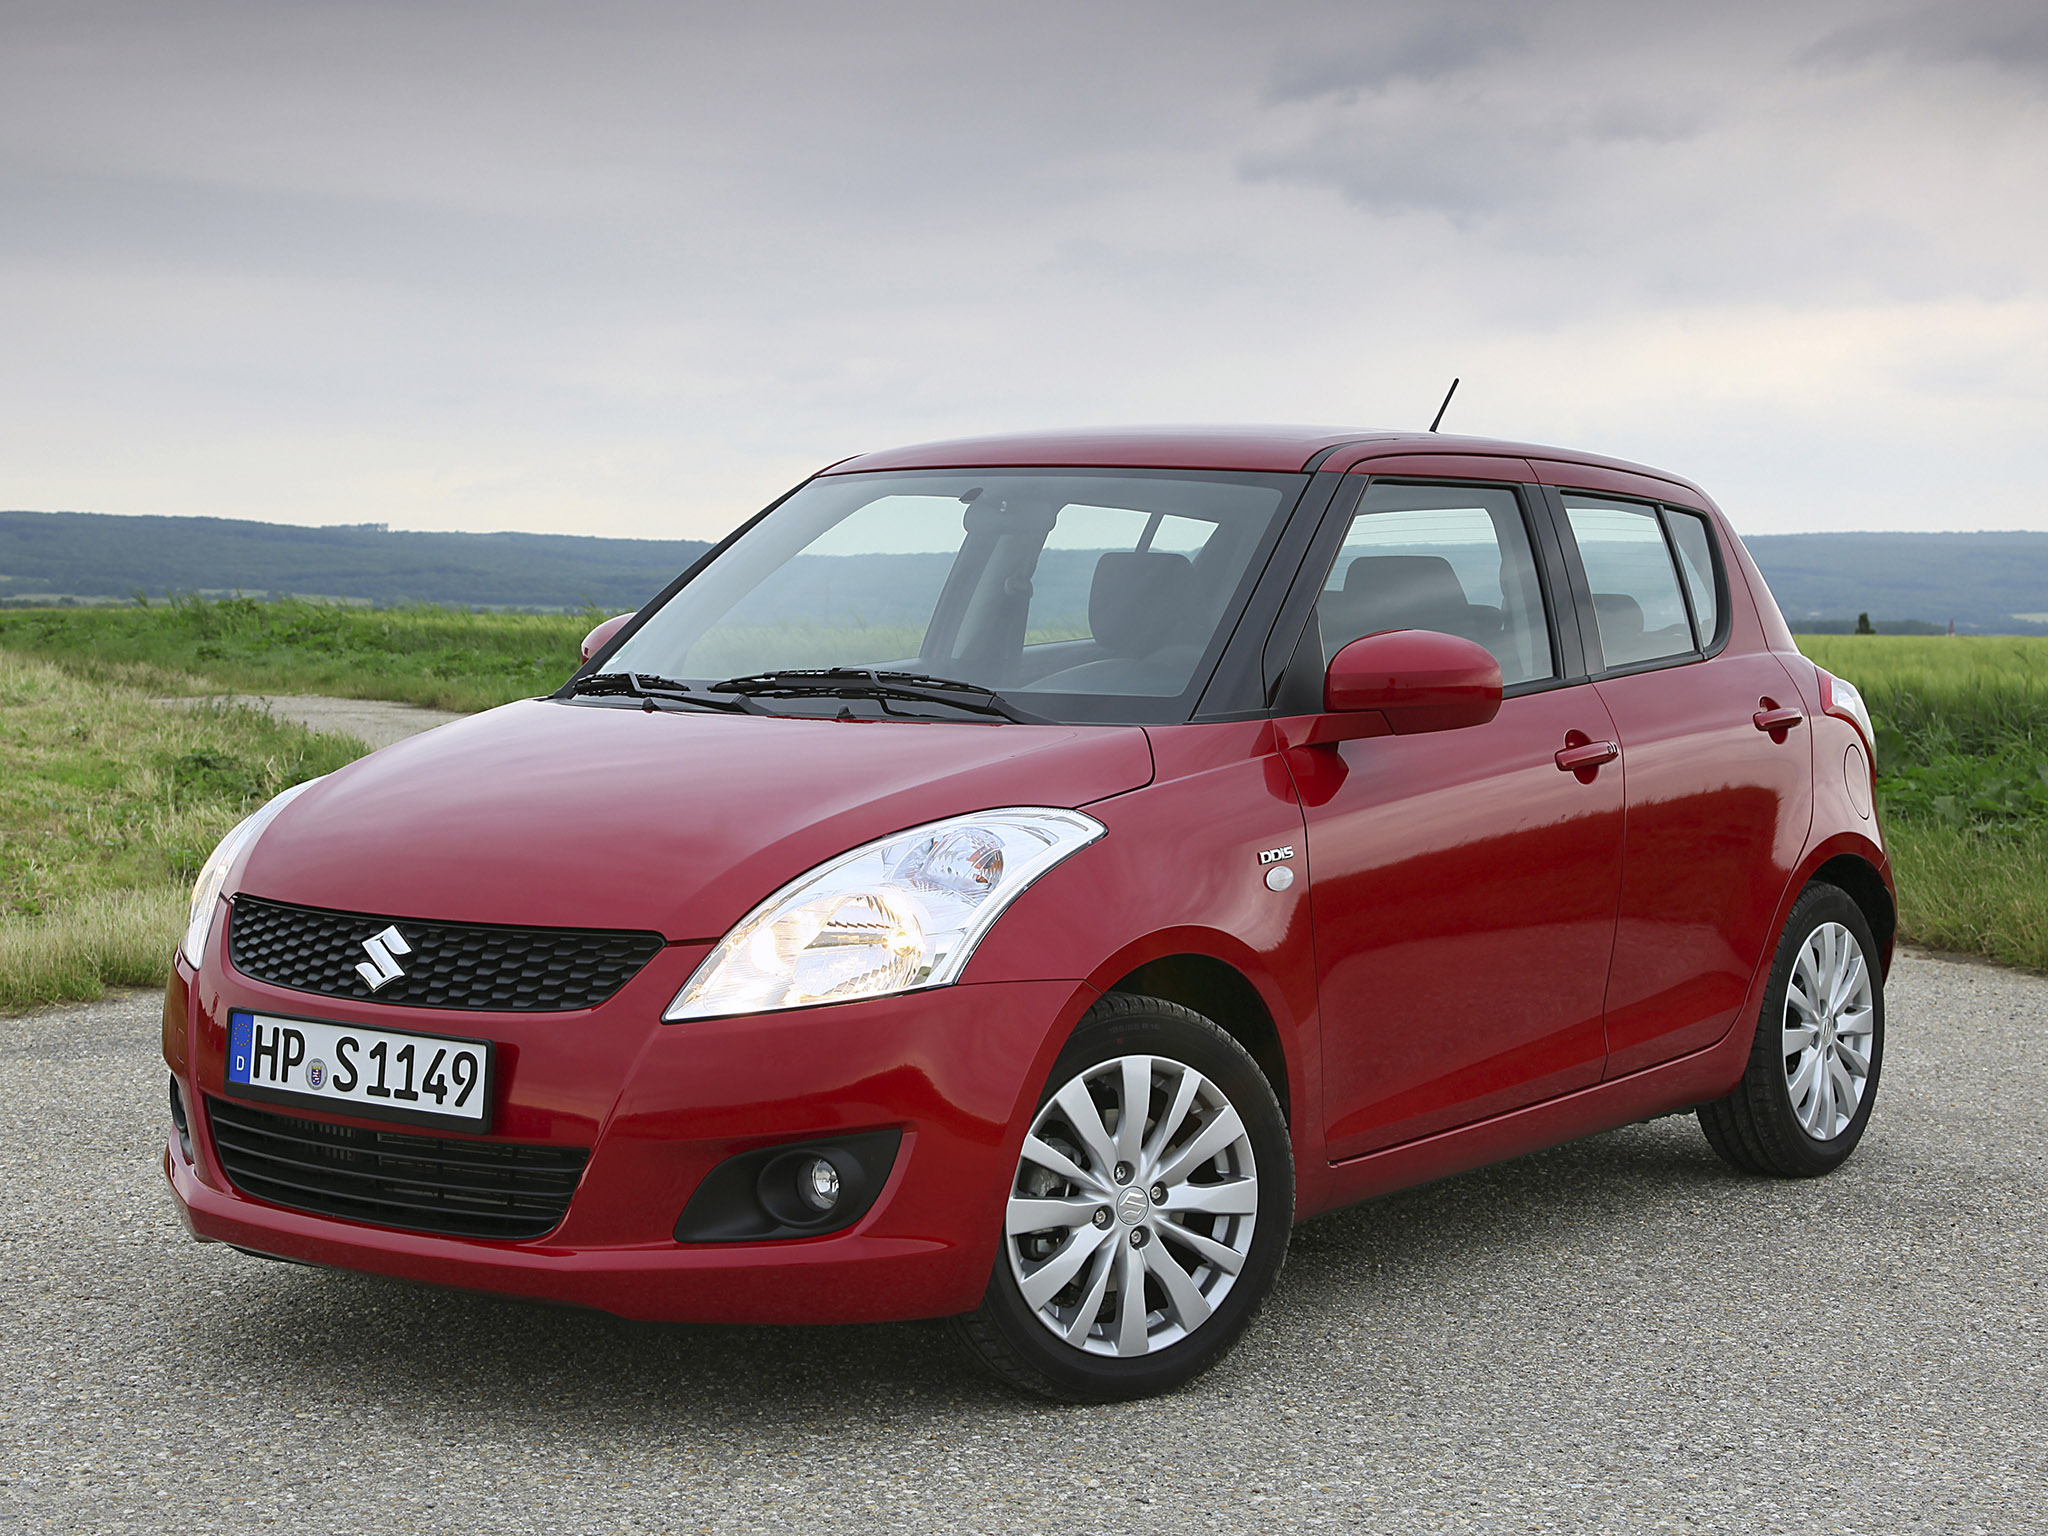 suzuki swift 5 doors specs 2010 2011 2012 2013 2014 autoevolution. Black Bedroom Furniture Sets. Home Design Ideas